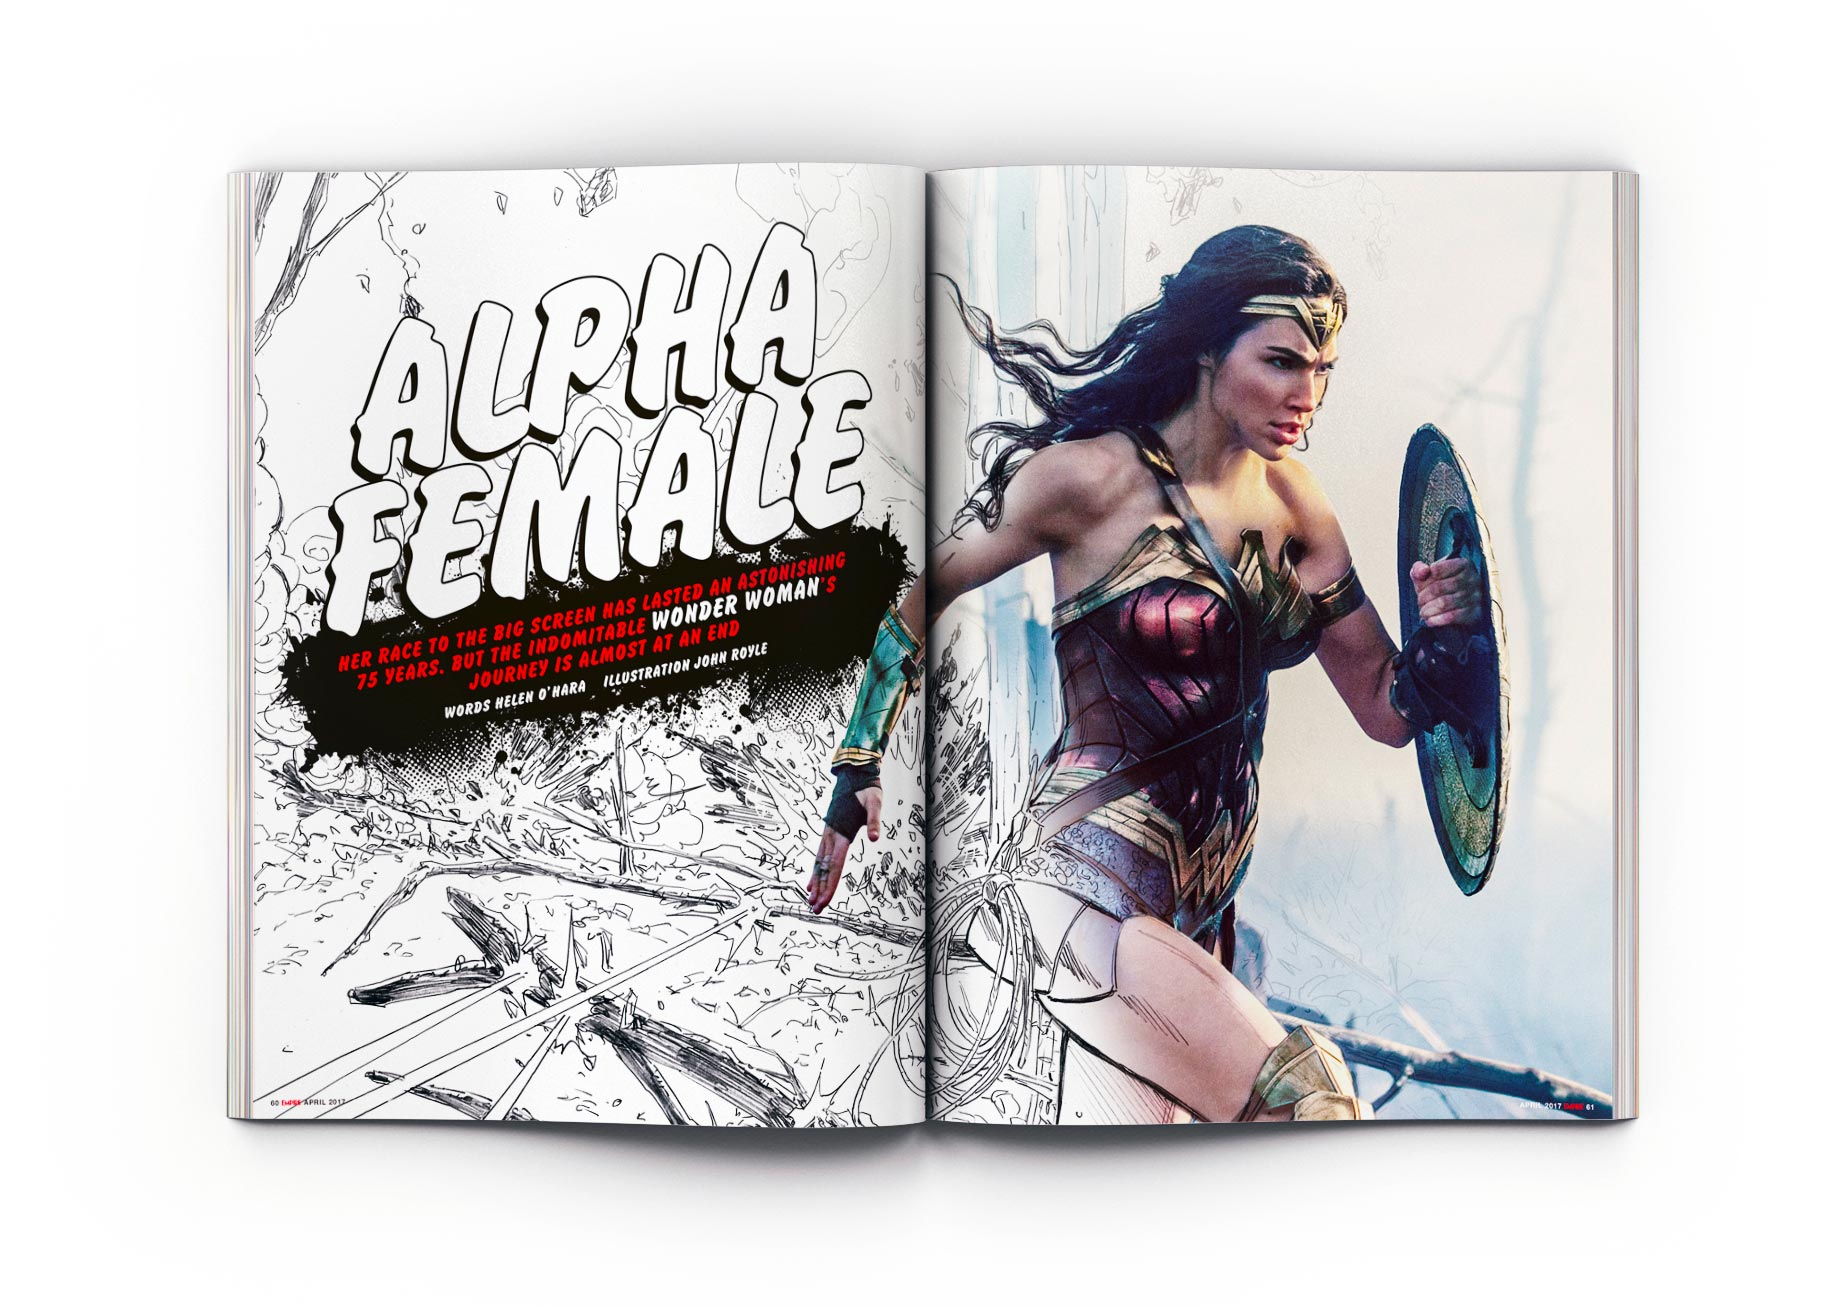 WonderWomanMag-spread.jpg